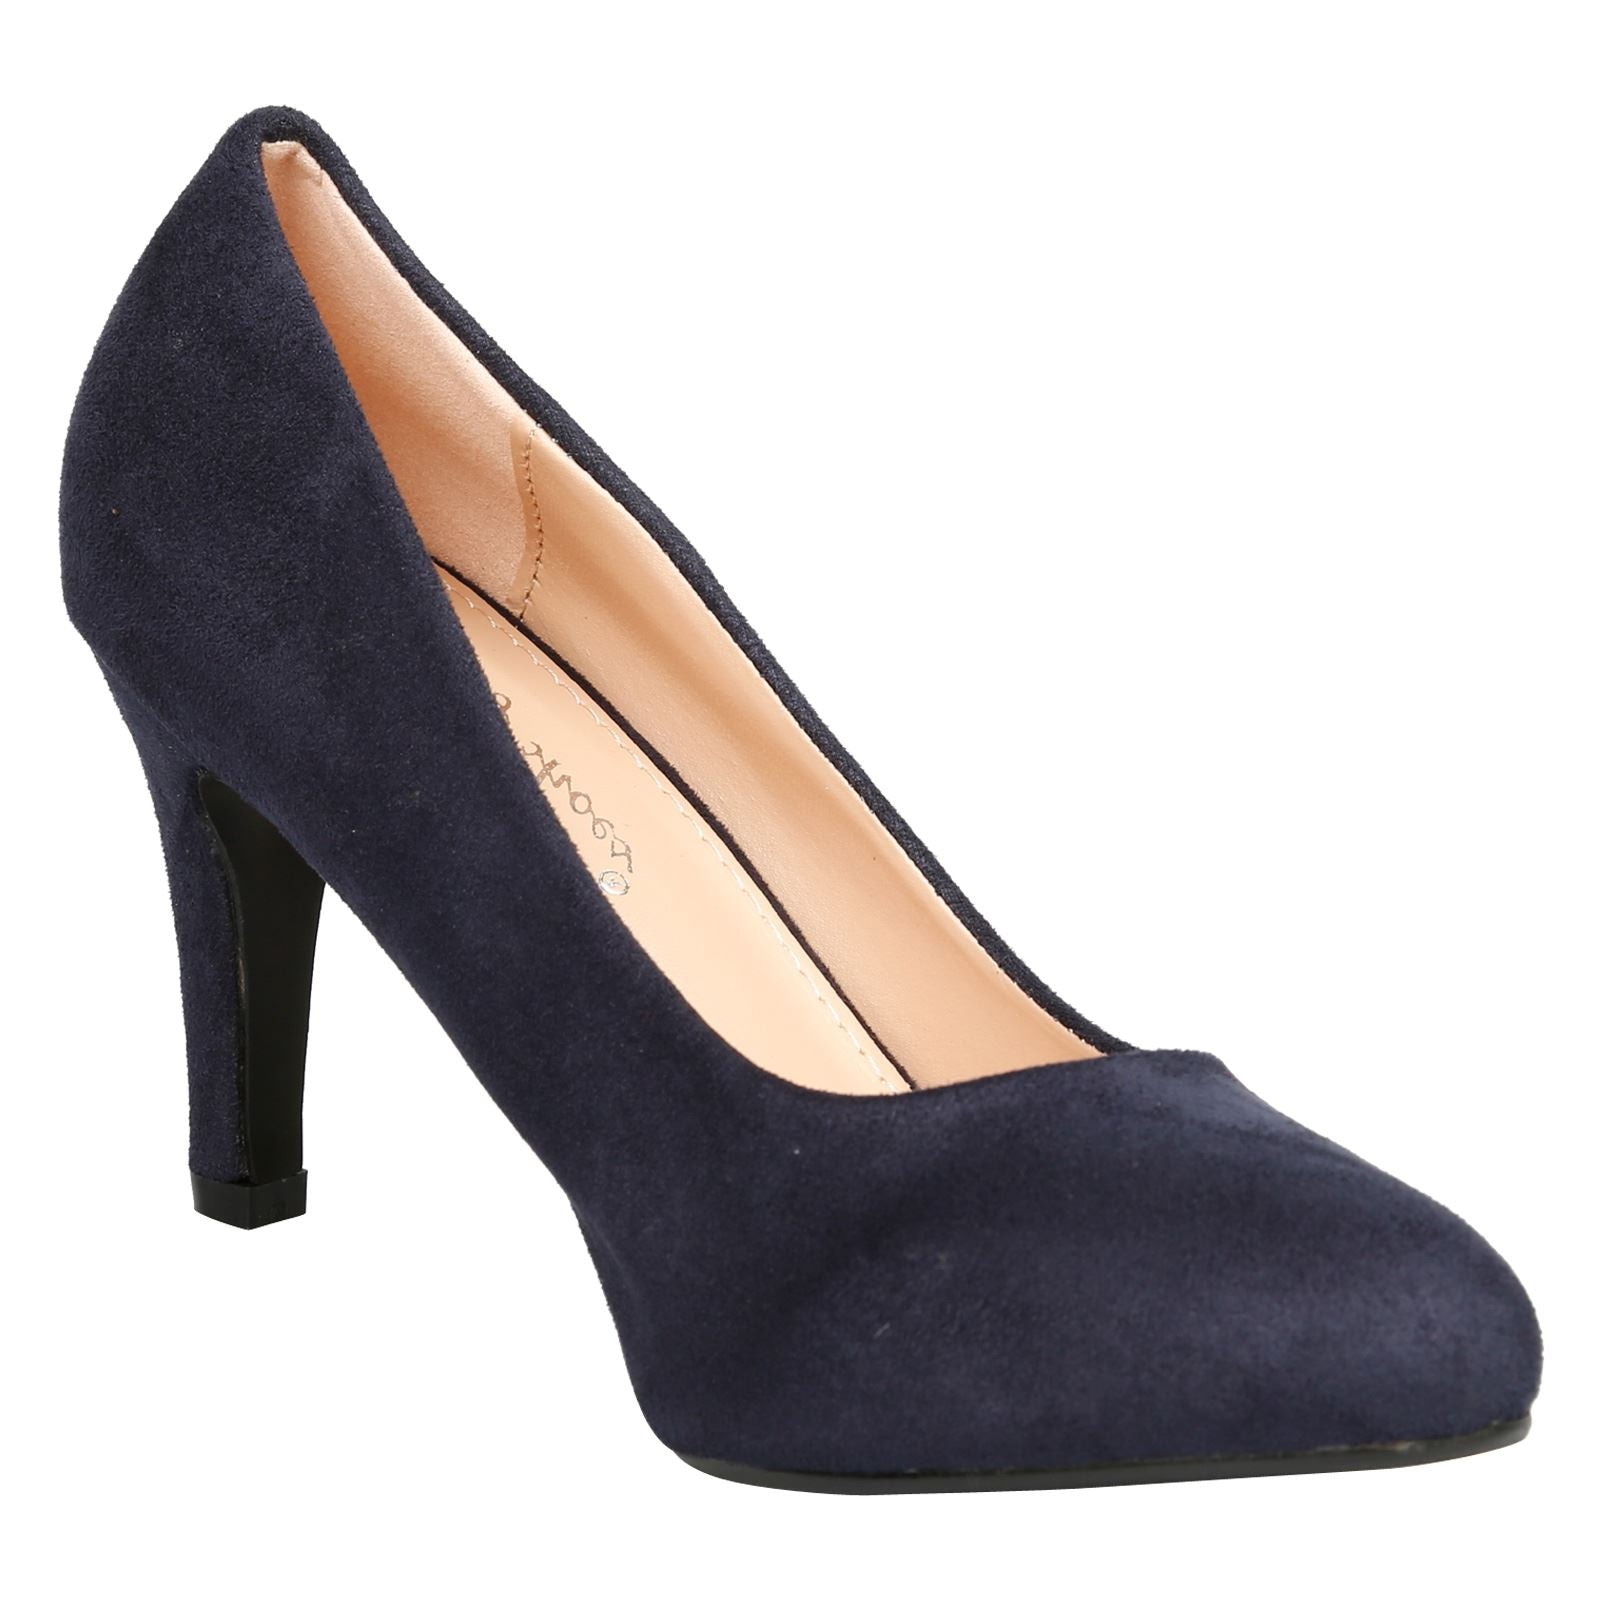 Amiya Slim Heeled Shoes in Dark Blue Faux Suede - Feet First Fashion